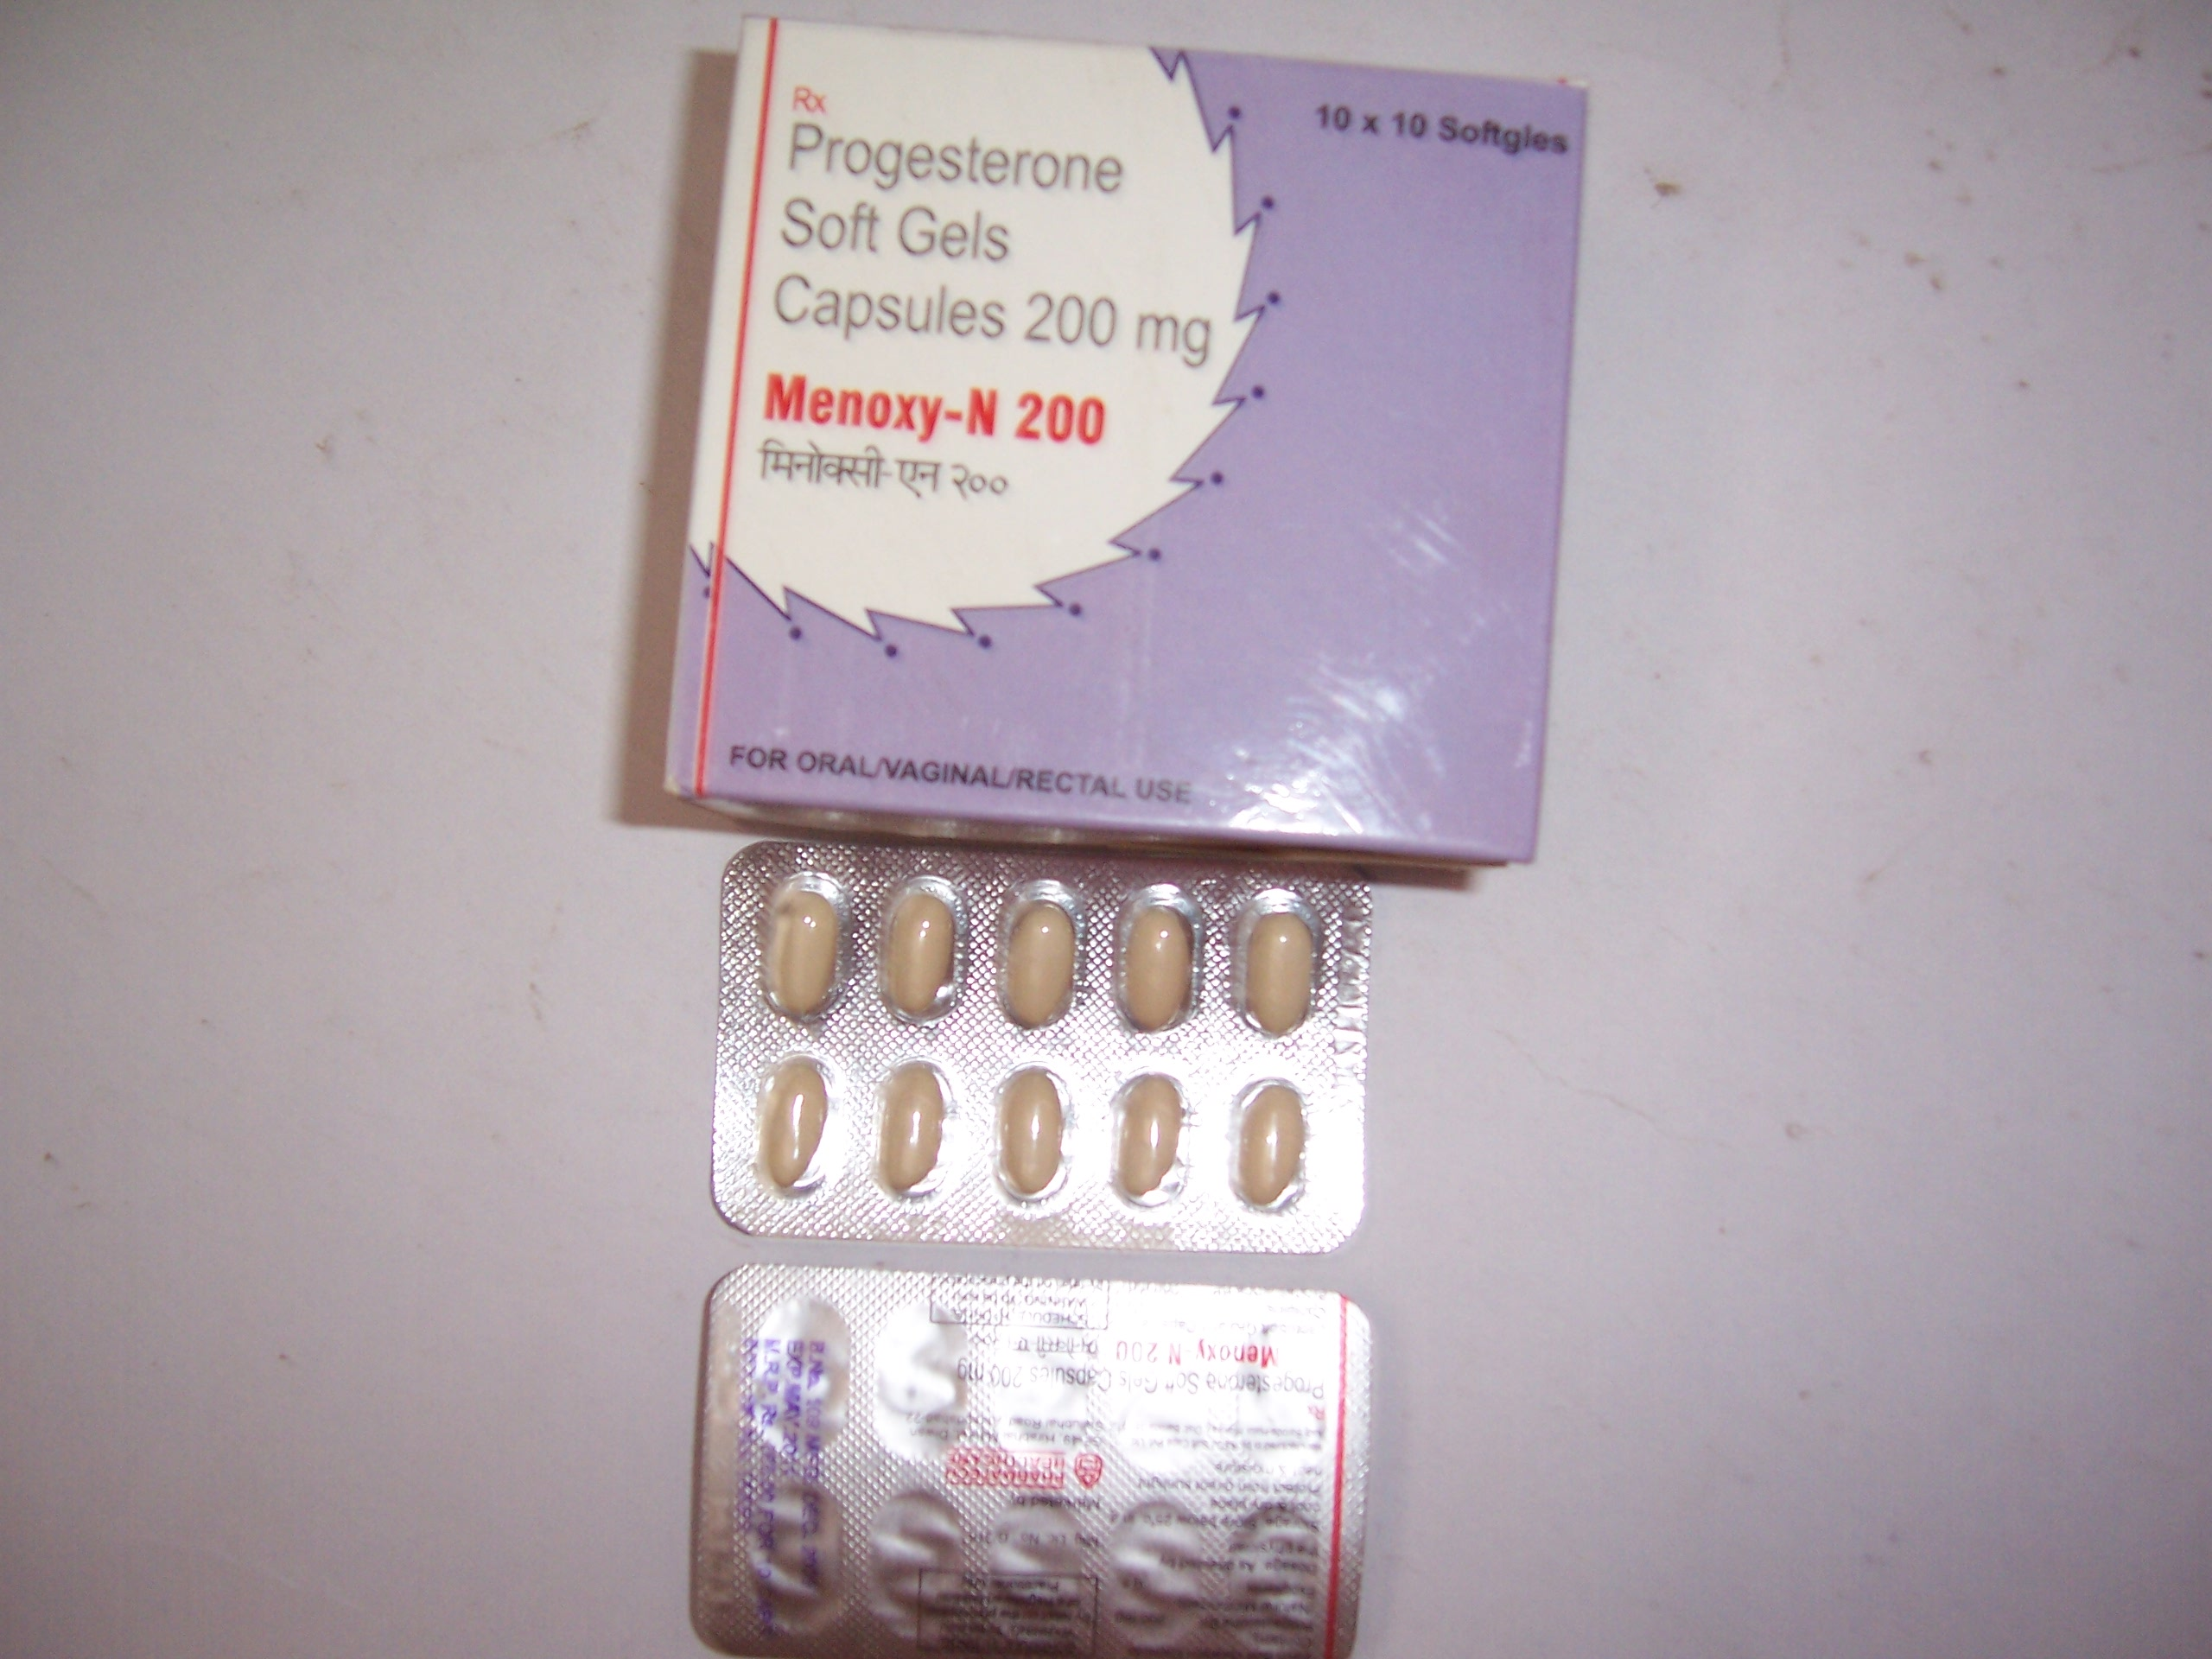 foracort 200 during pregnancy